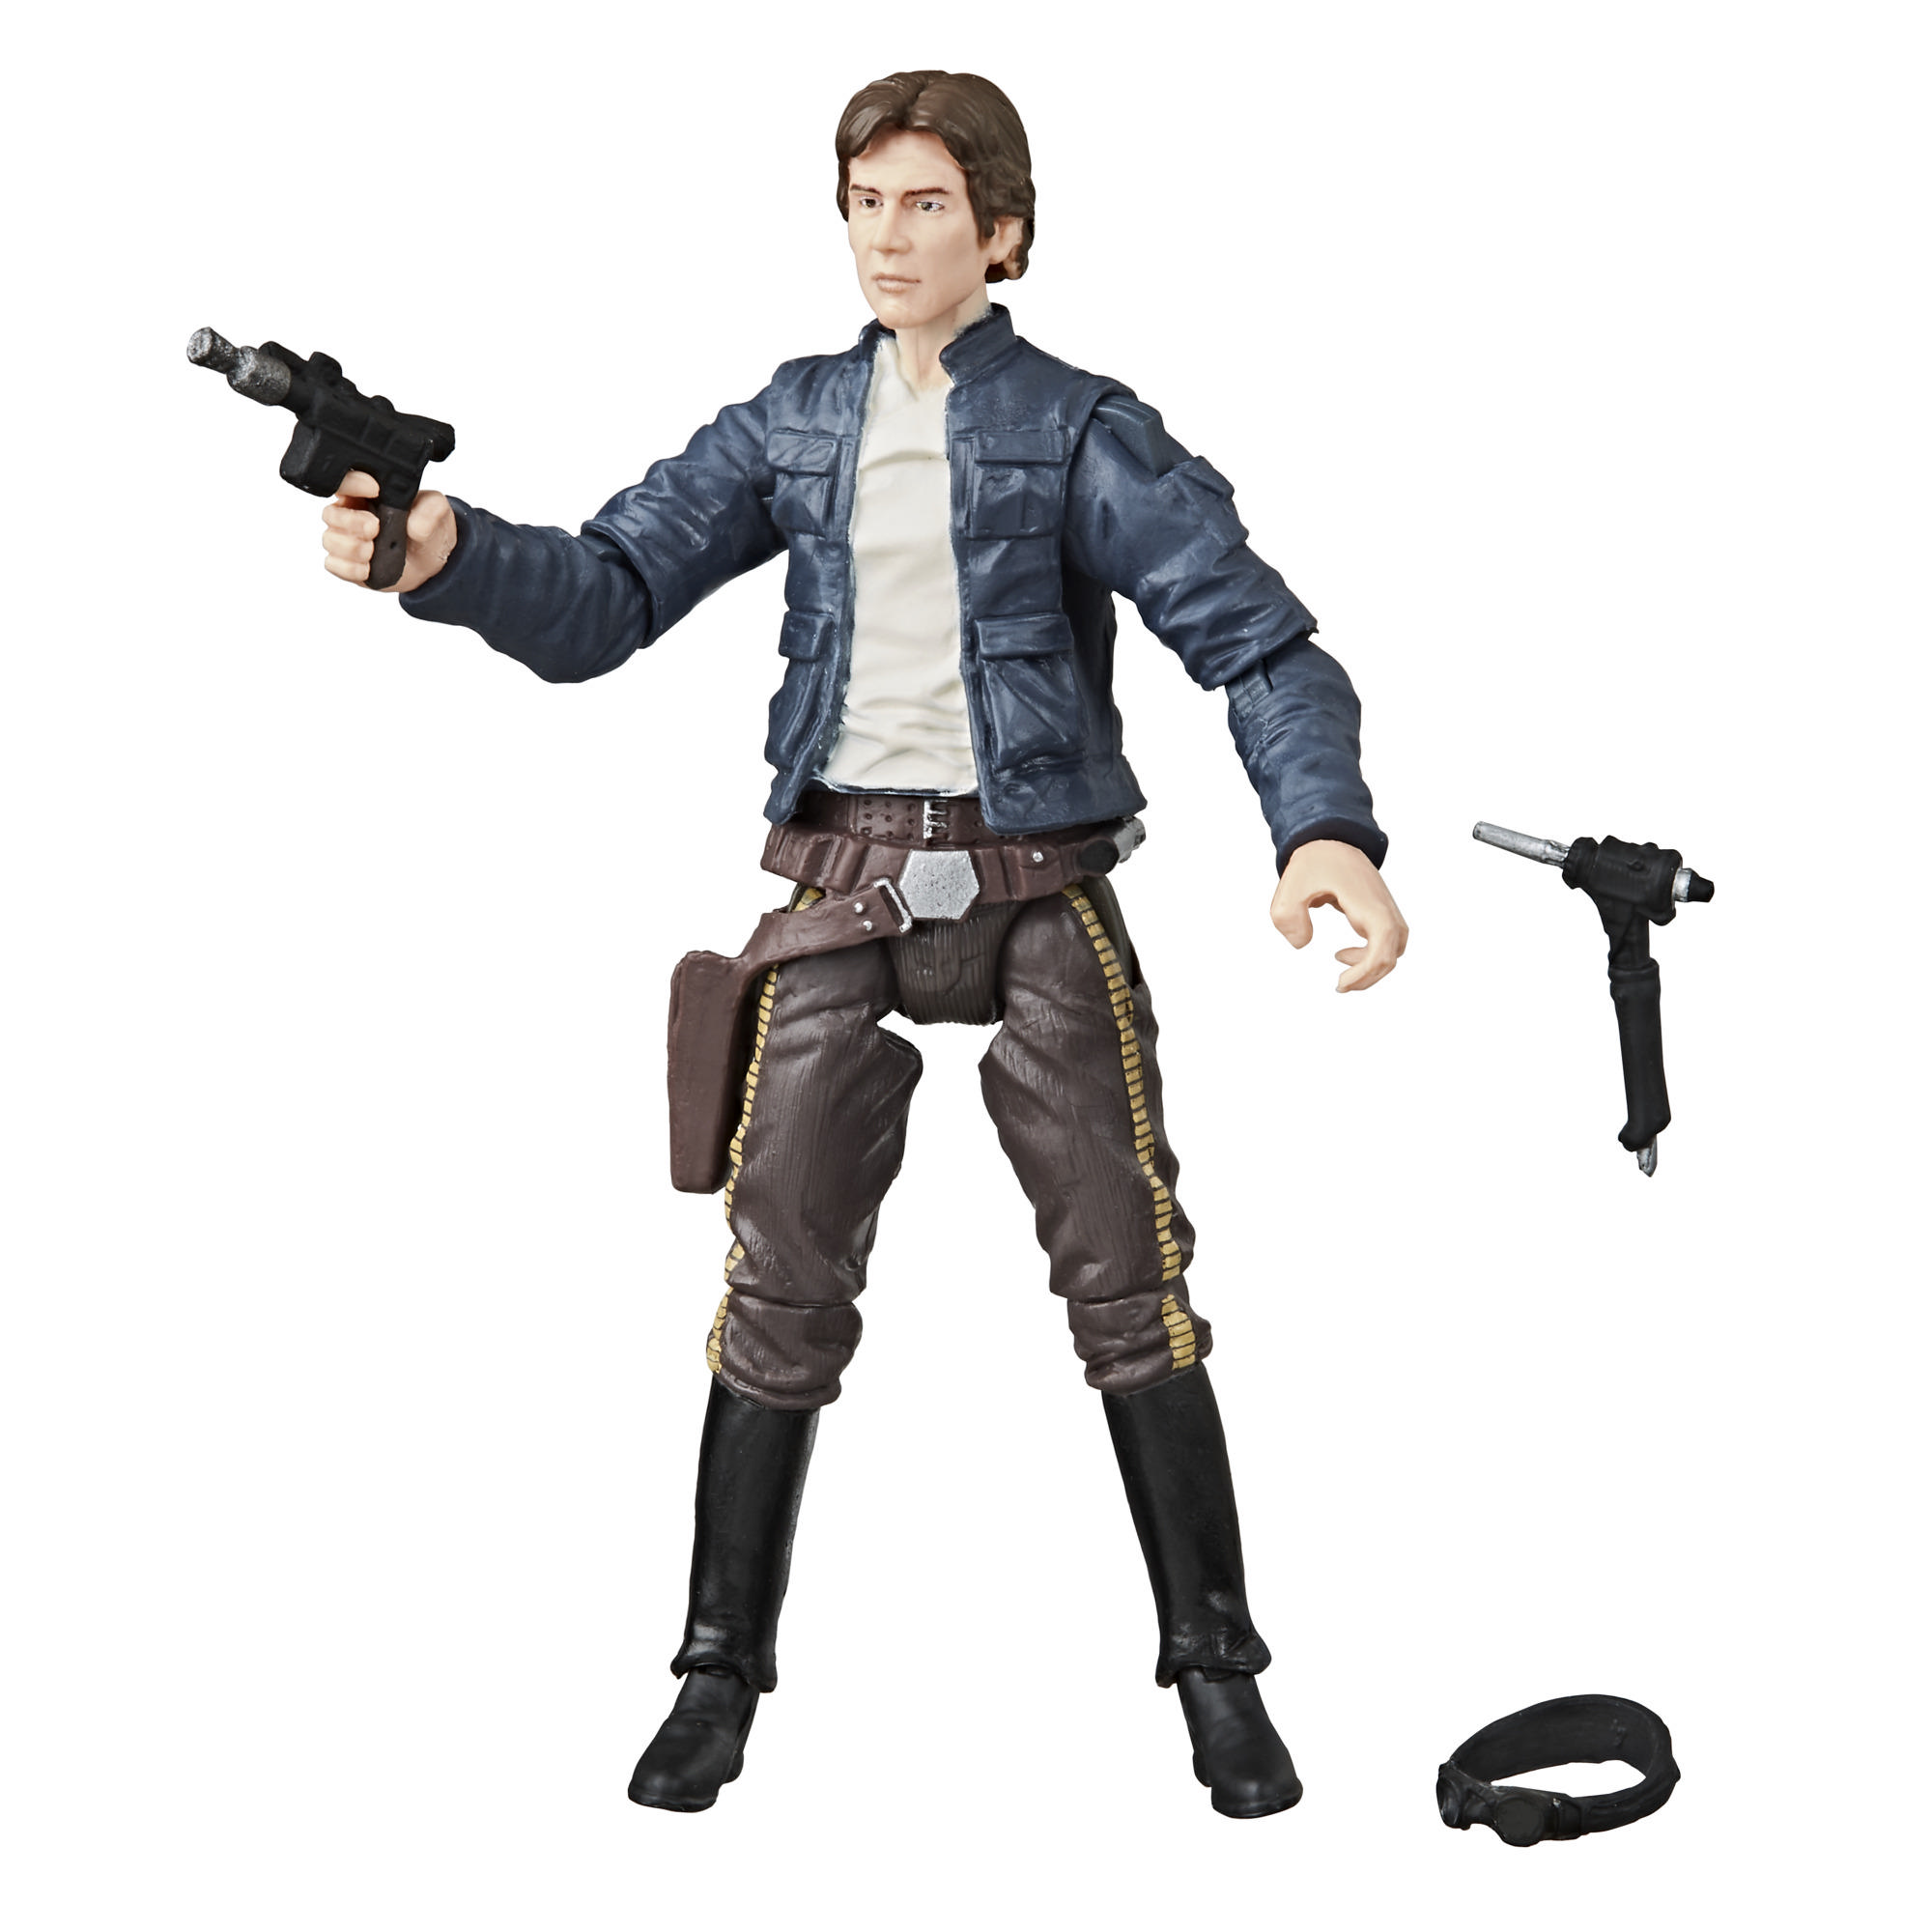 Star Wars The Vintage Collection Han Solo (Bespin) Toy, 3.75-inch Scale Star Wars: The Empire Strikes Back Figure